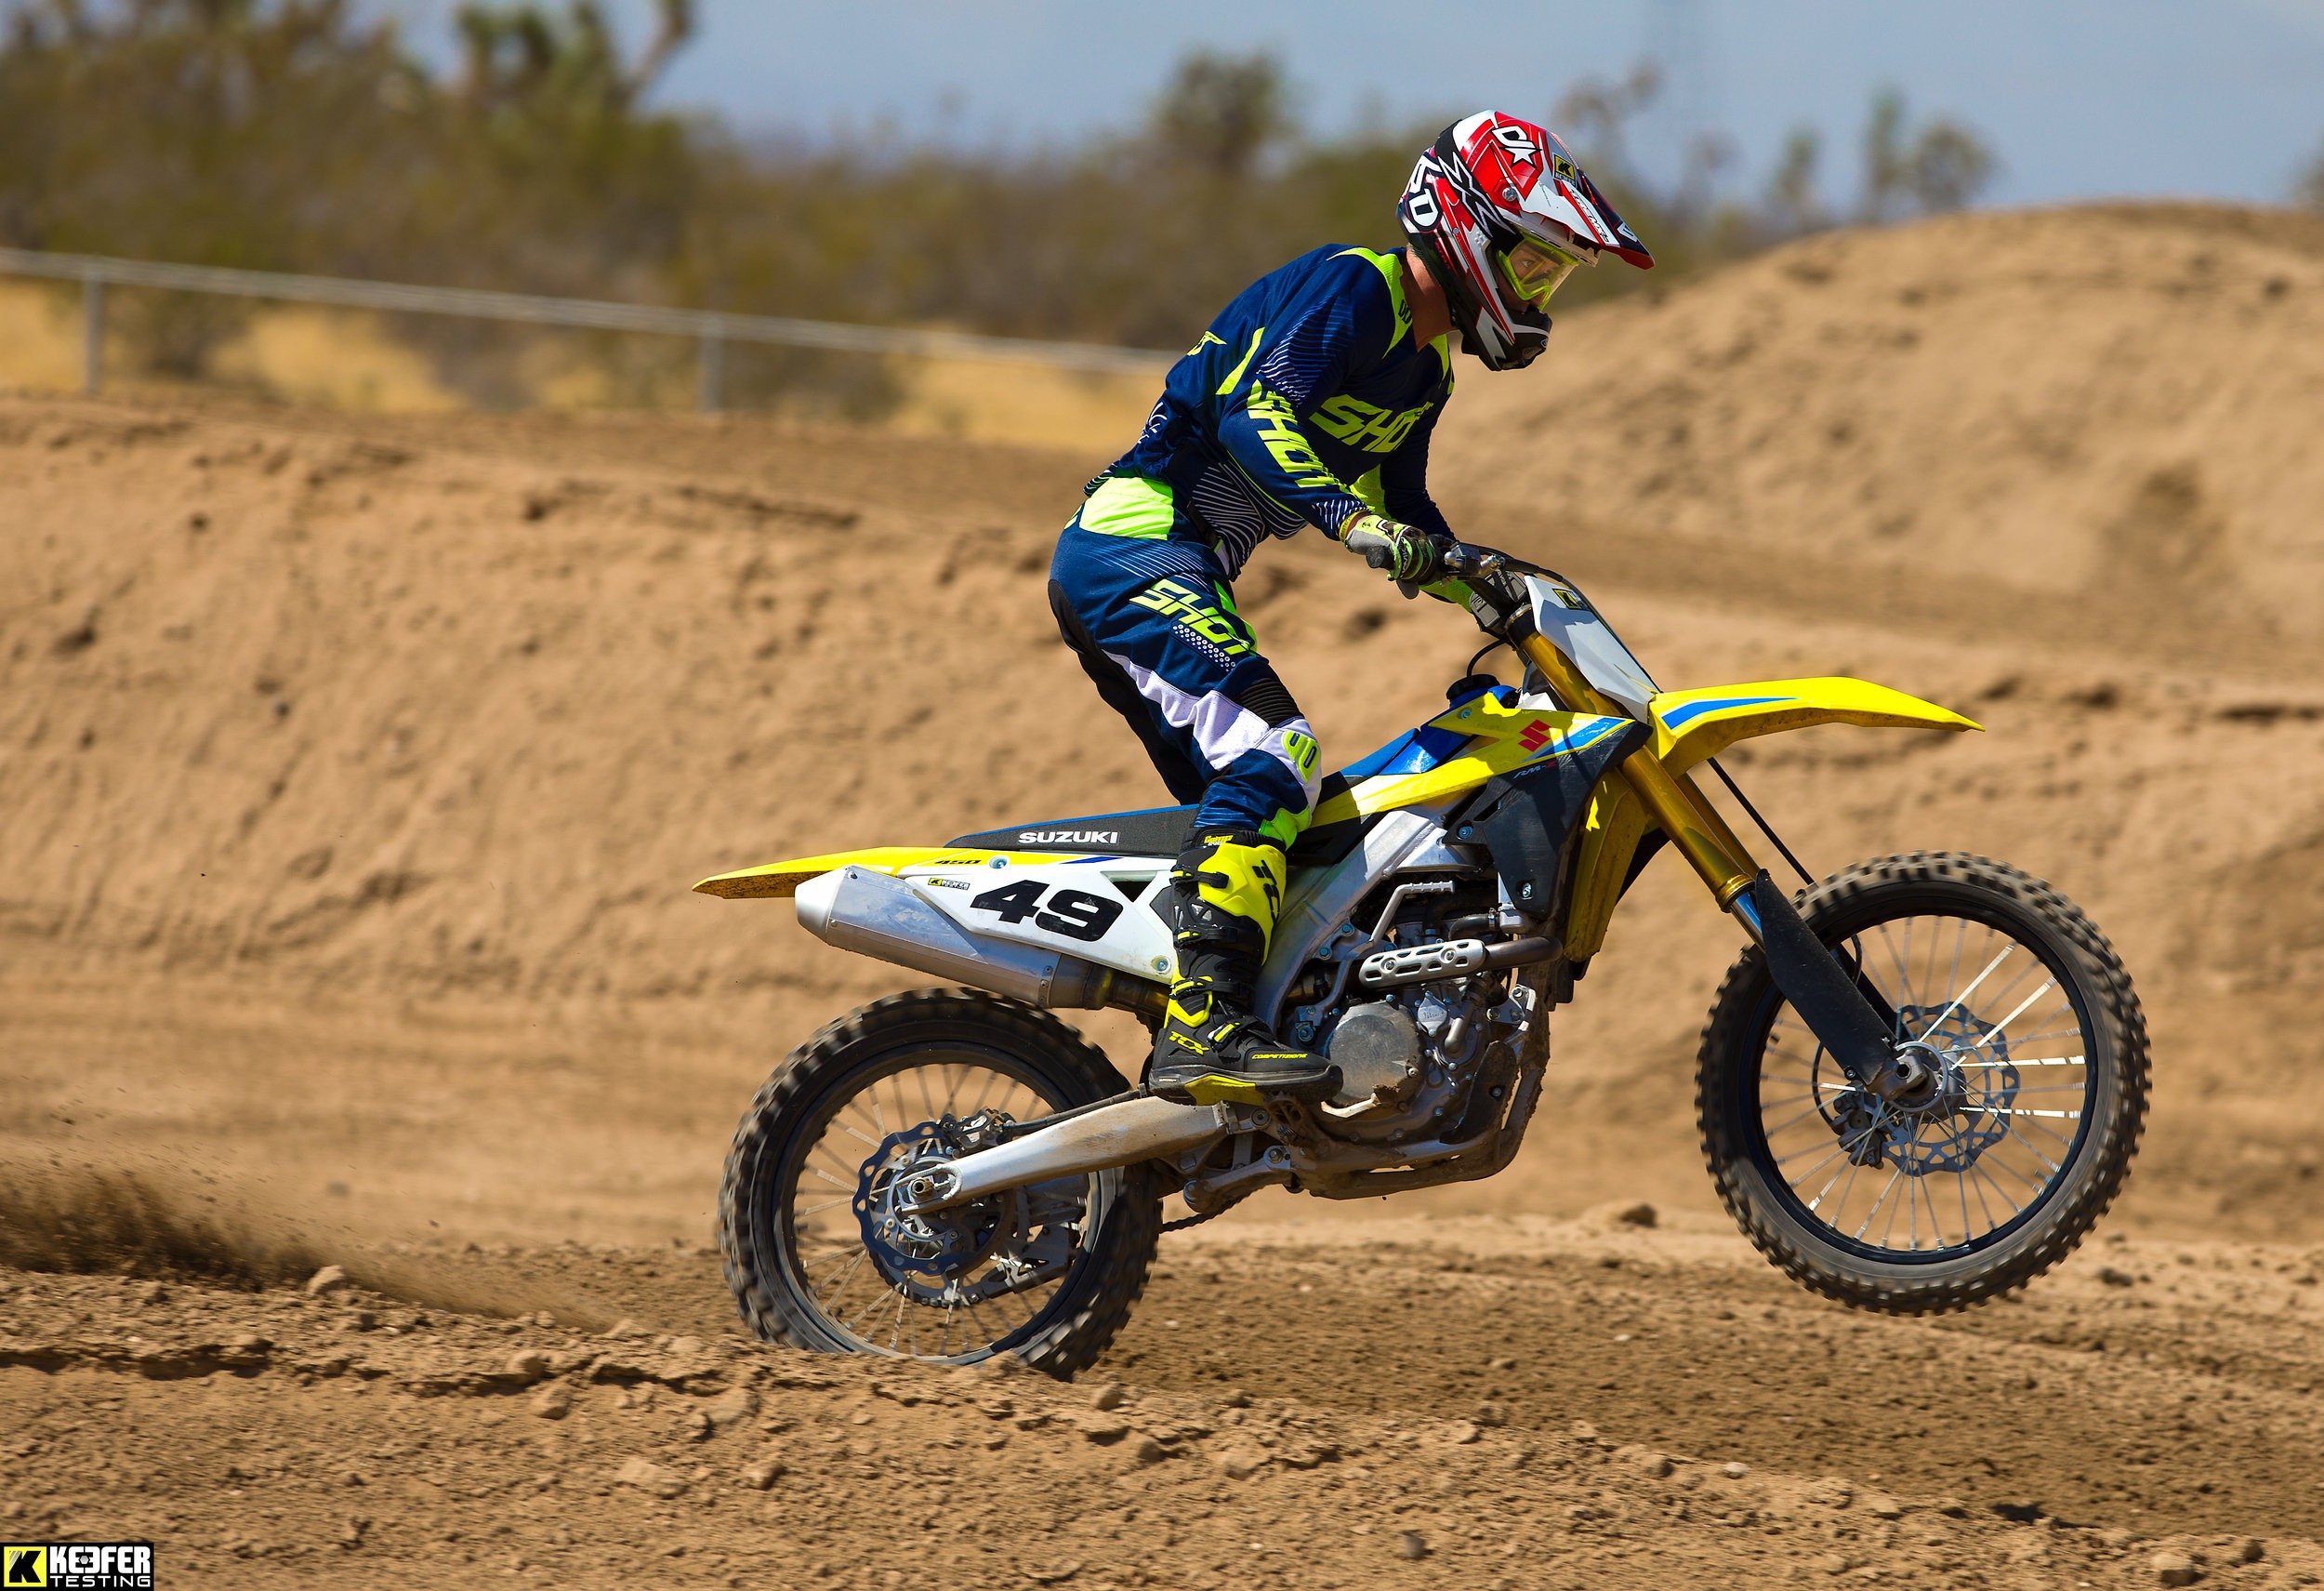 Colton Aeck has come from a broken back to ripping a motorcycle in less than eight months.